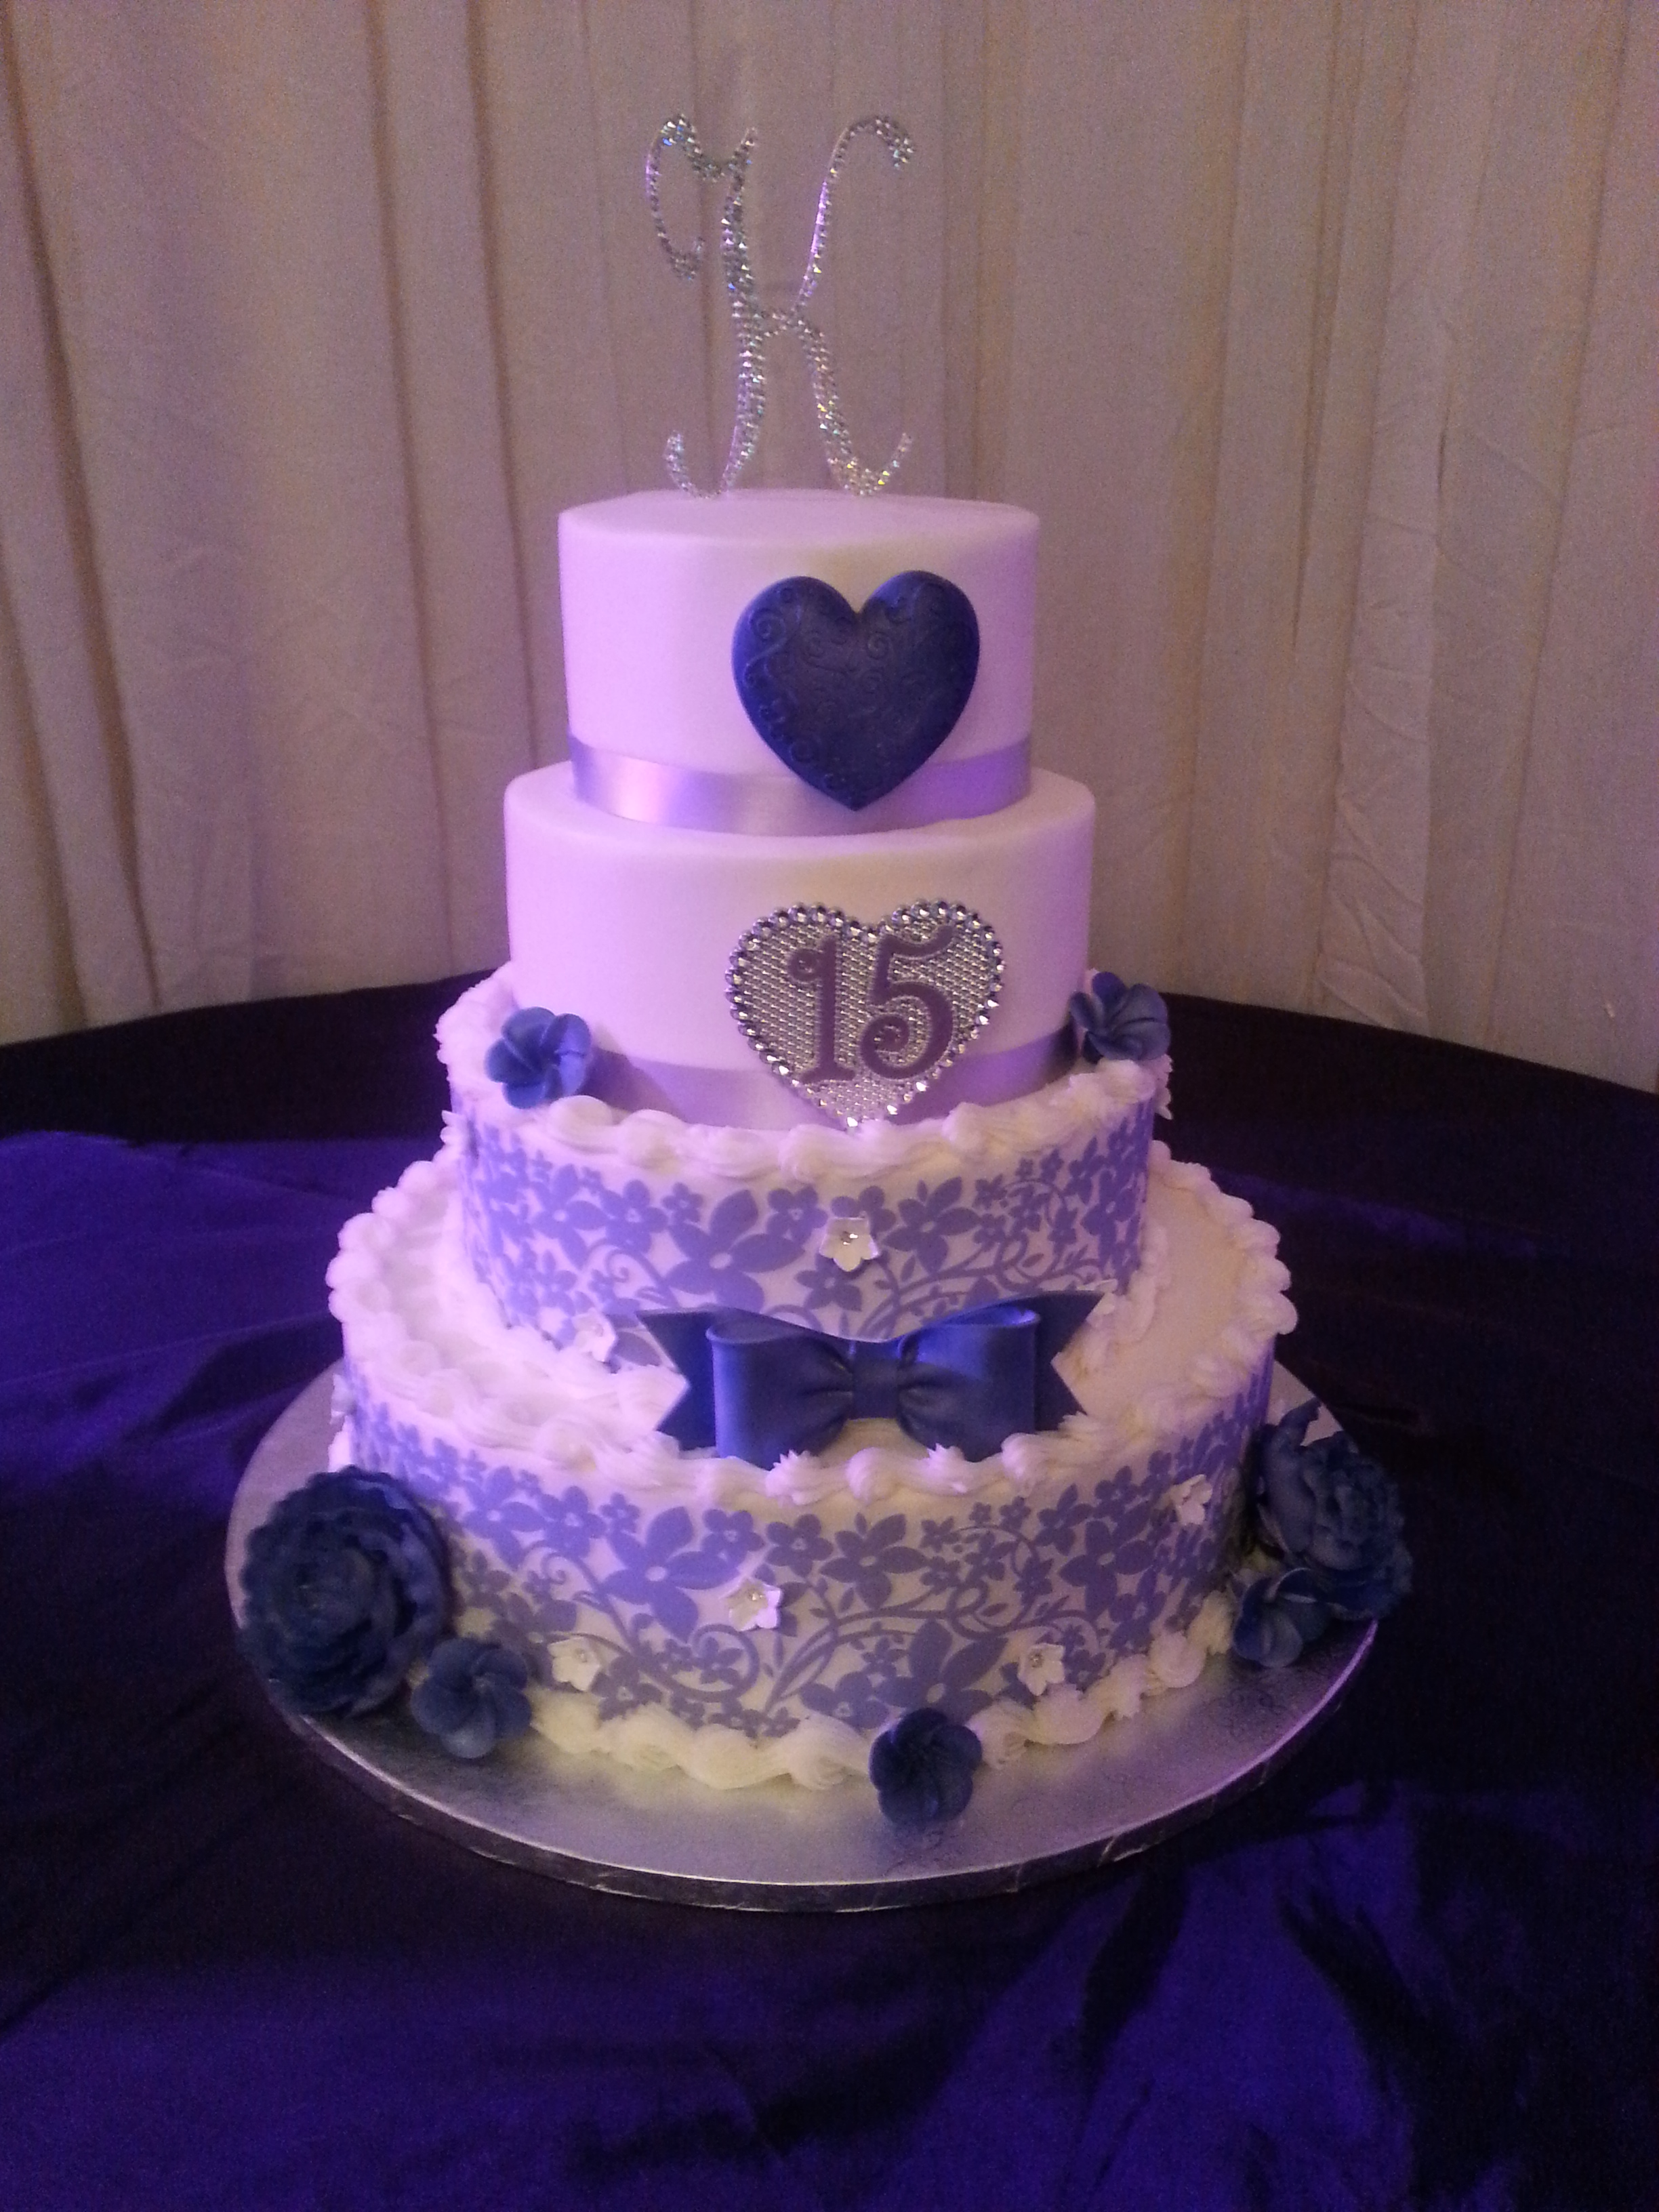 Quinceanera Cakes With Cupcakes Red velvet cake and cupcakesQuinceanera Cakes With Cupcakes